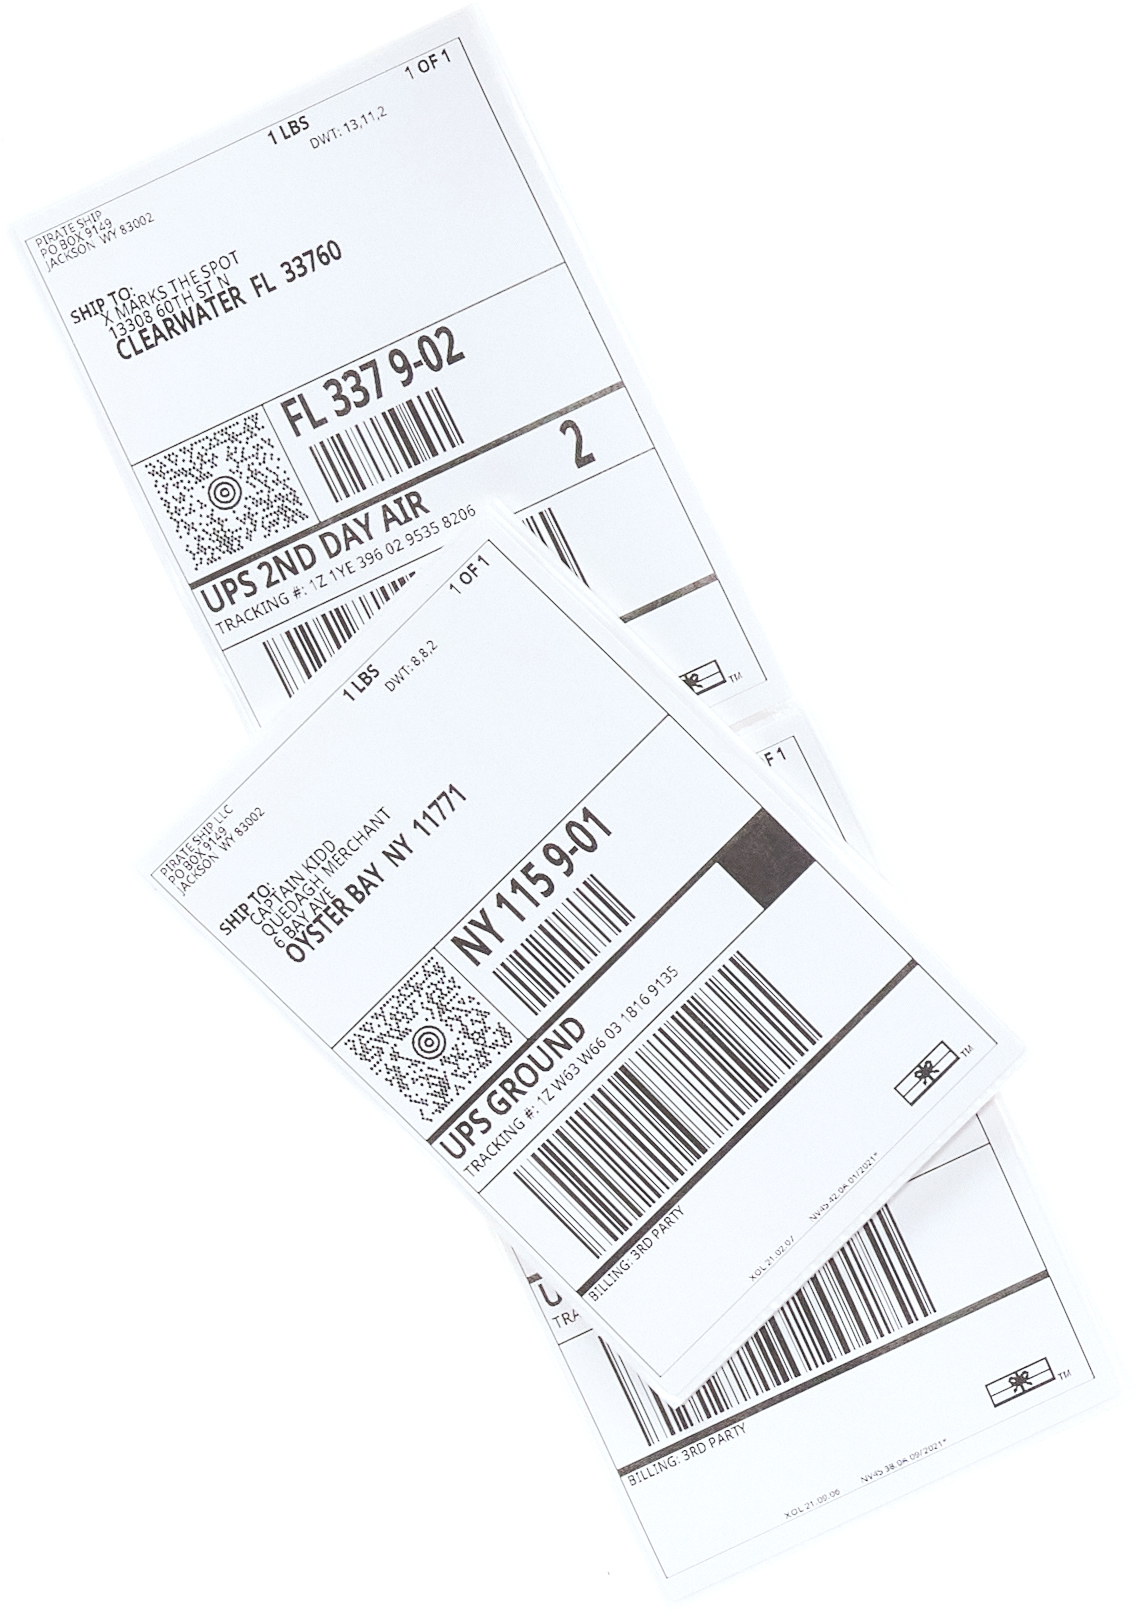 Discounted UPS Ground labels